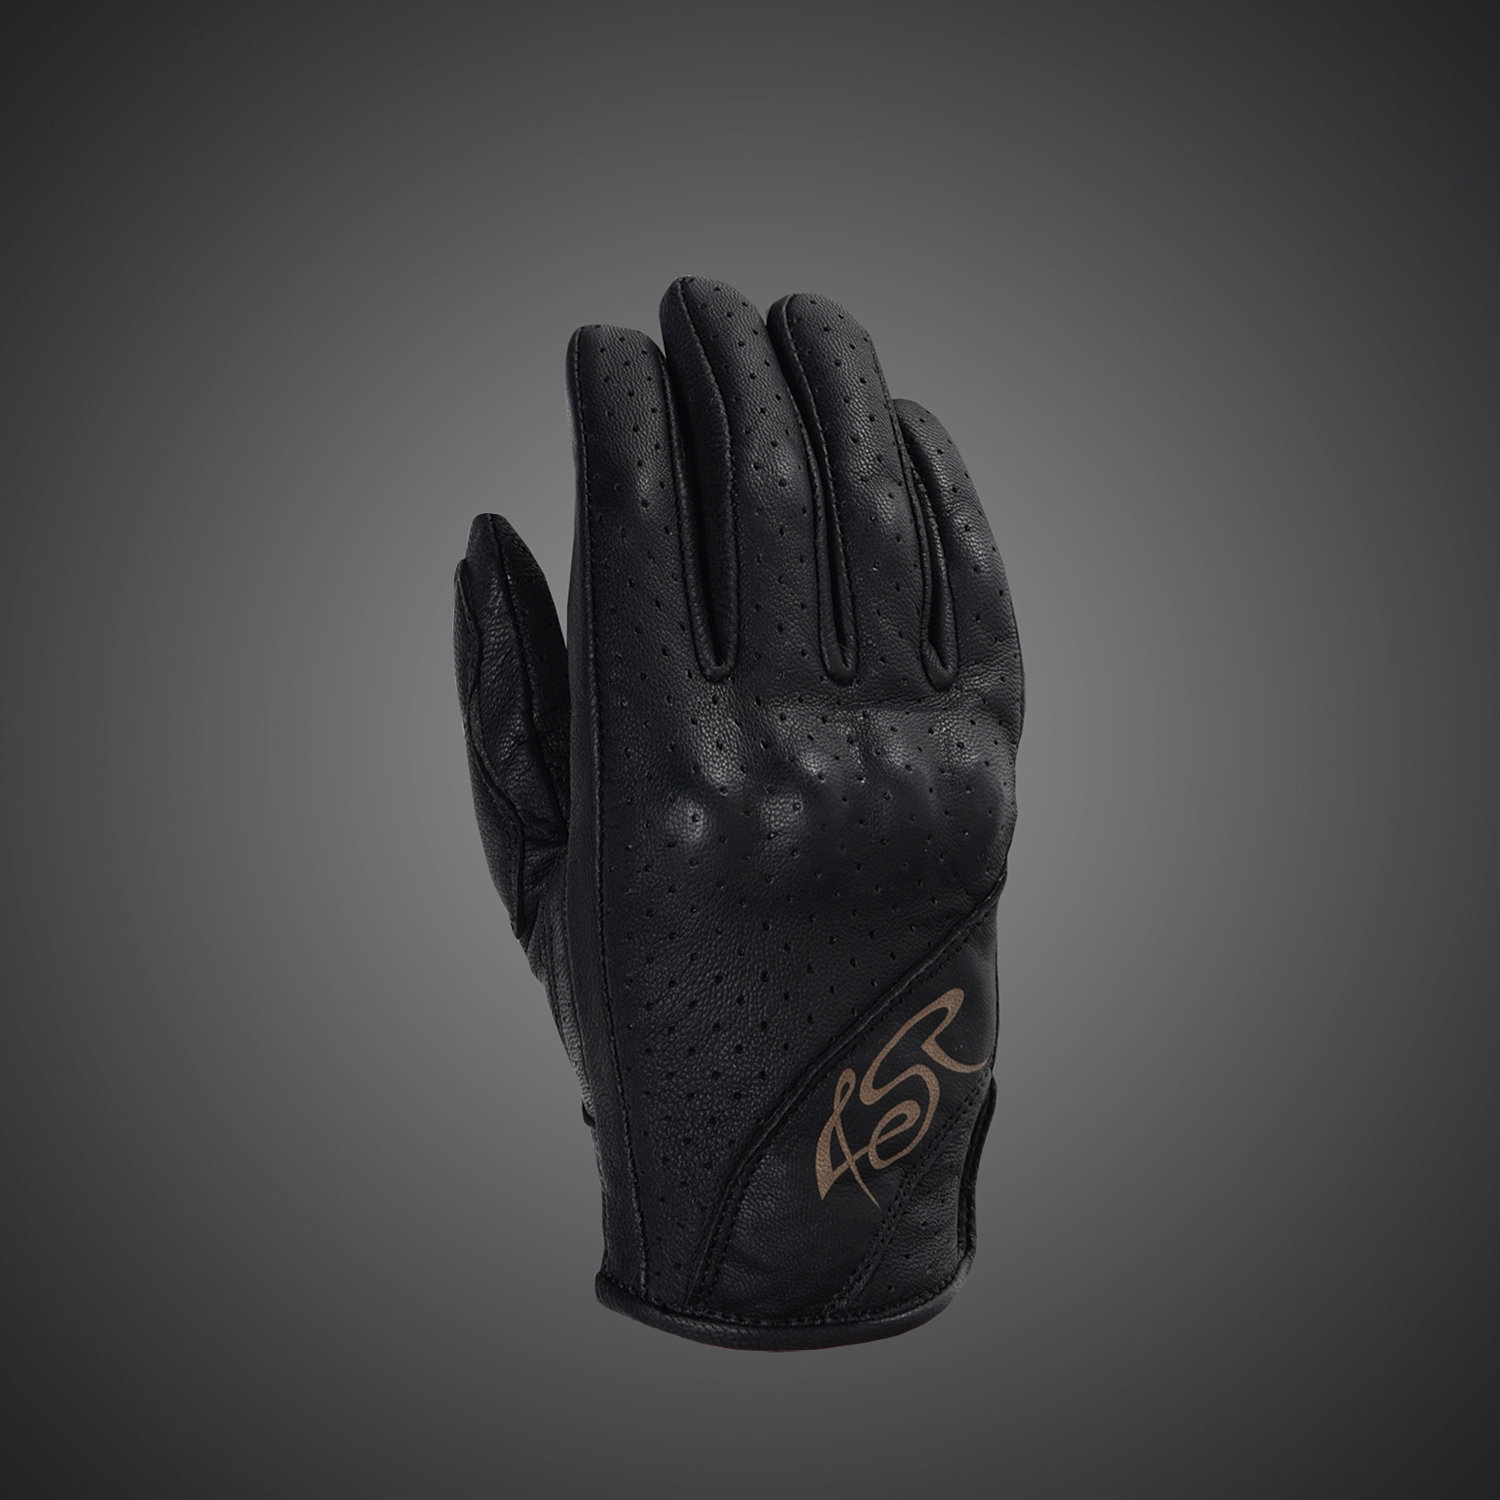 Ladies leather gloves australia - Monster Lady Glove